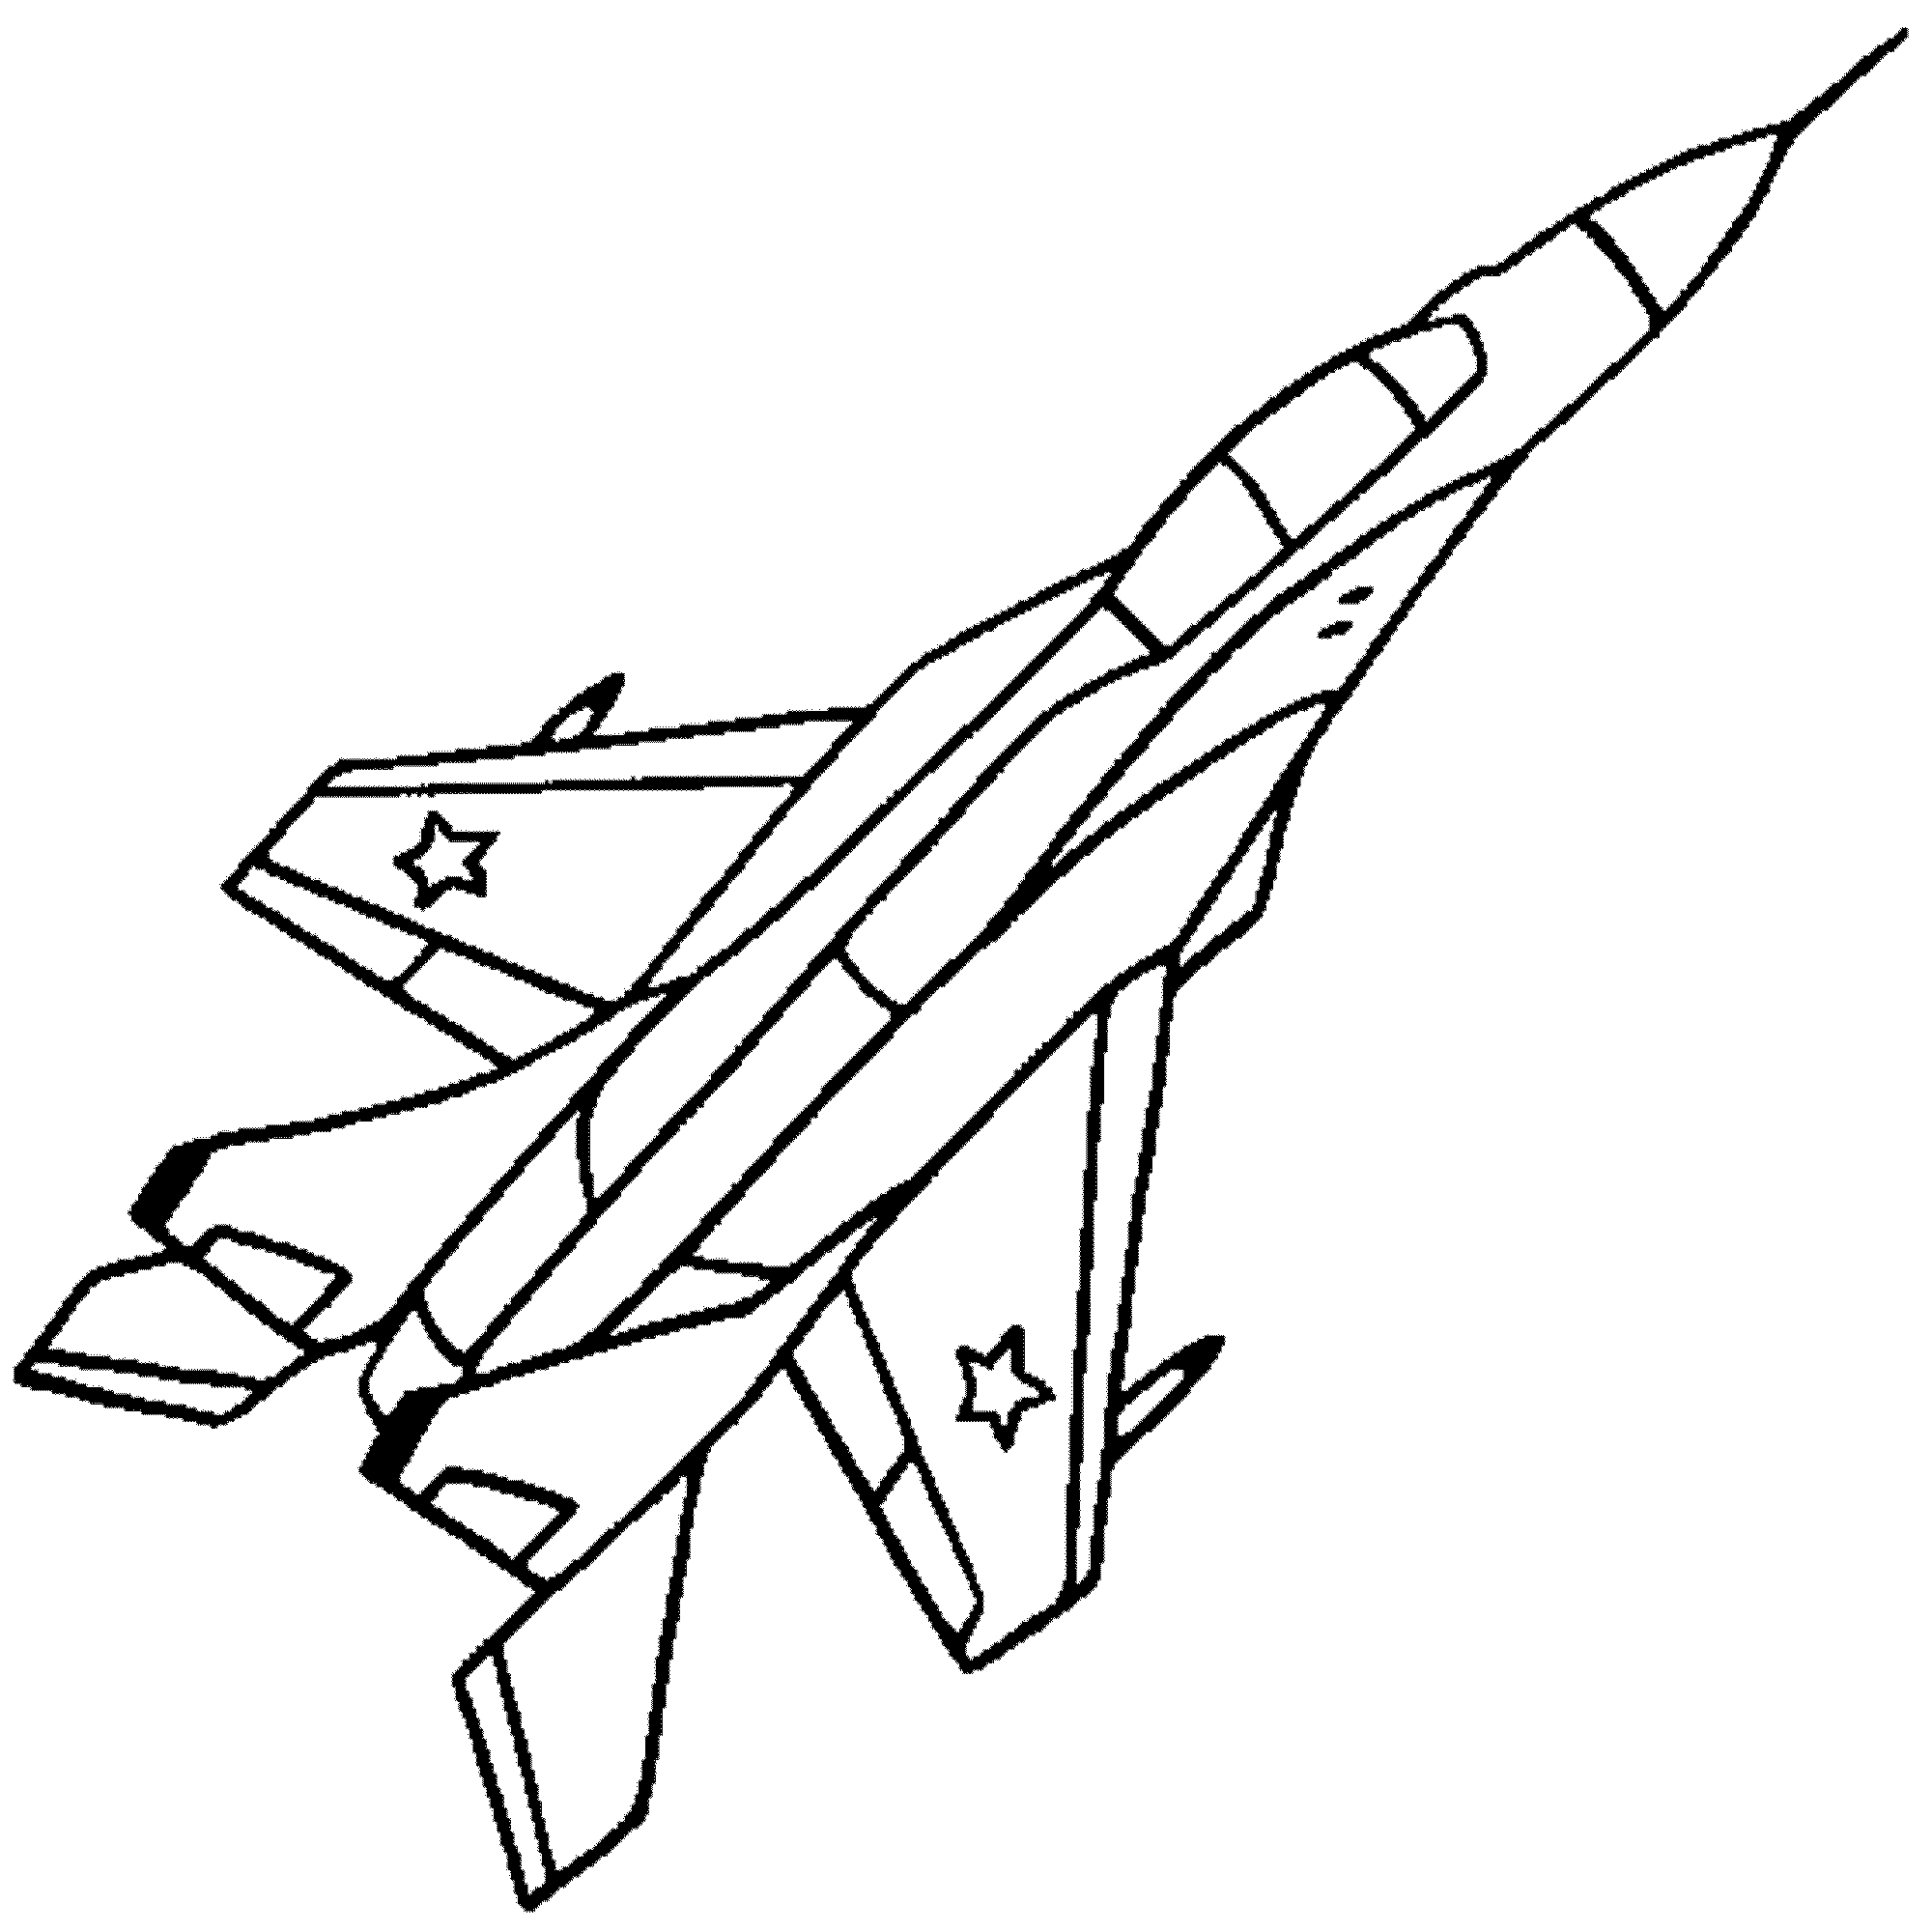 sea harrier fighter jet online coloring page fun pinterest frger